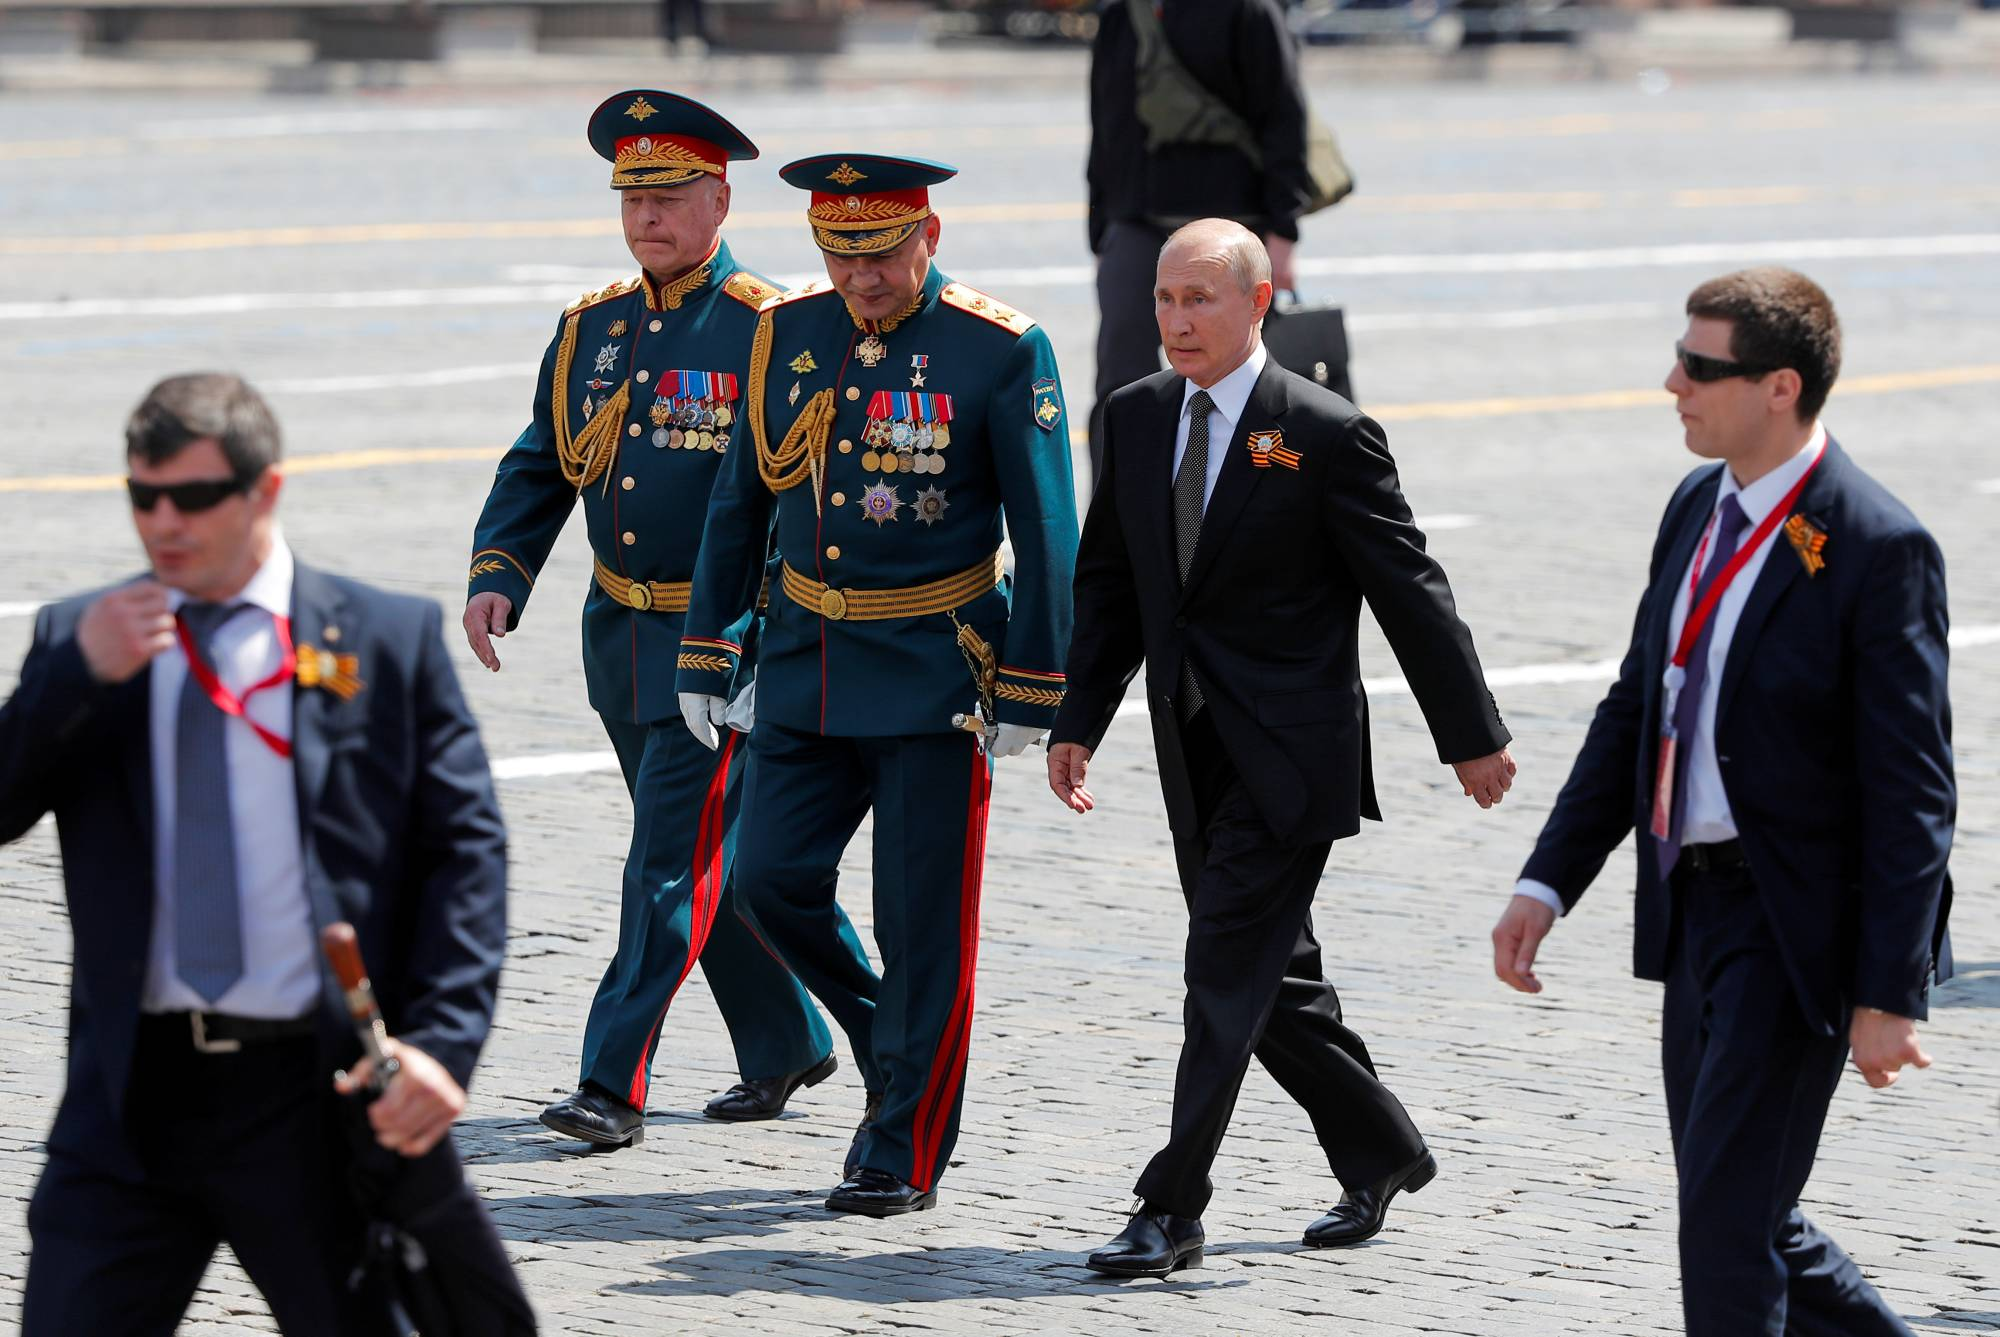 Russian President Vladimir Putin must be taking great pleasure in the convulsions that have seized the U.S. body politic, yet the satisfaction must also be fleeting as his attention focuses elsewhere to problems in his own backyard. | REUTERS